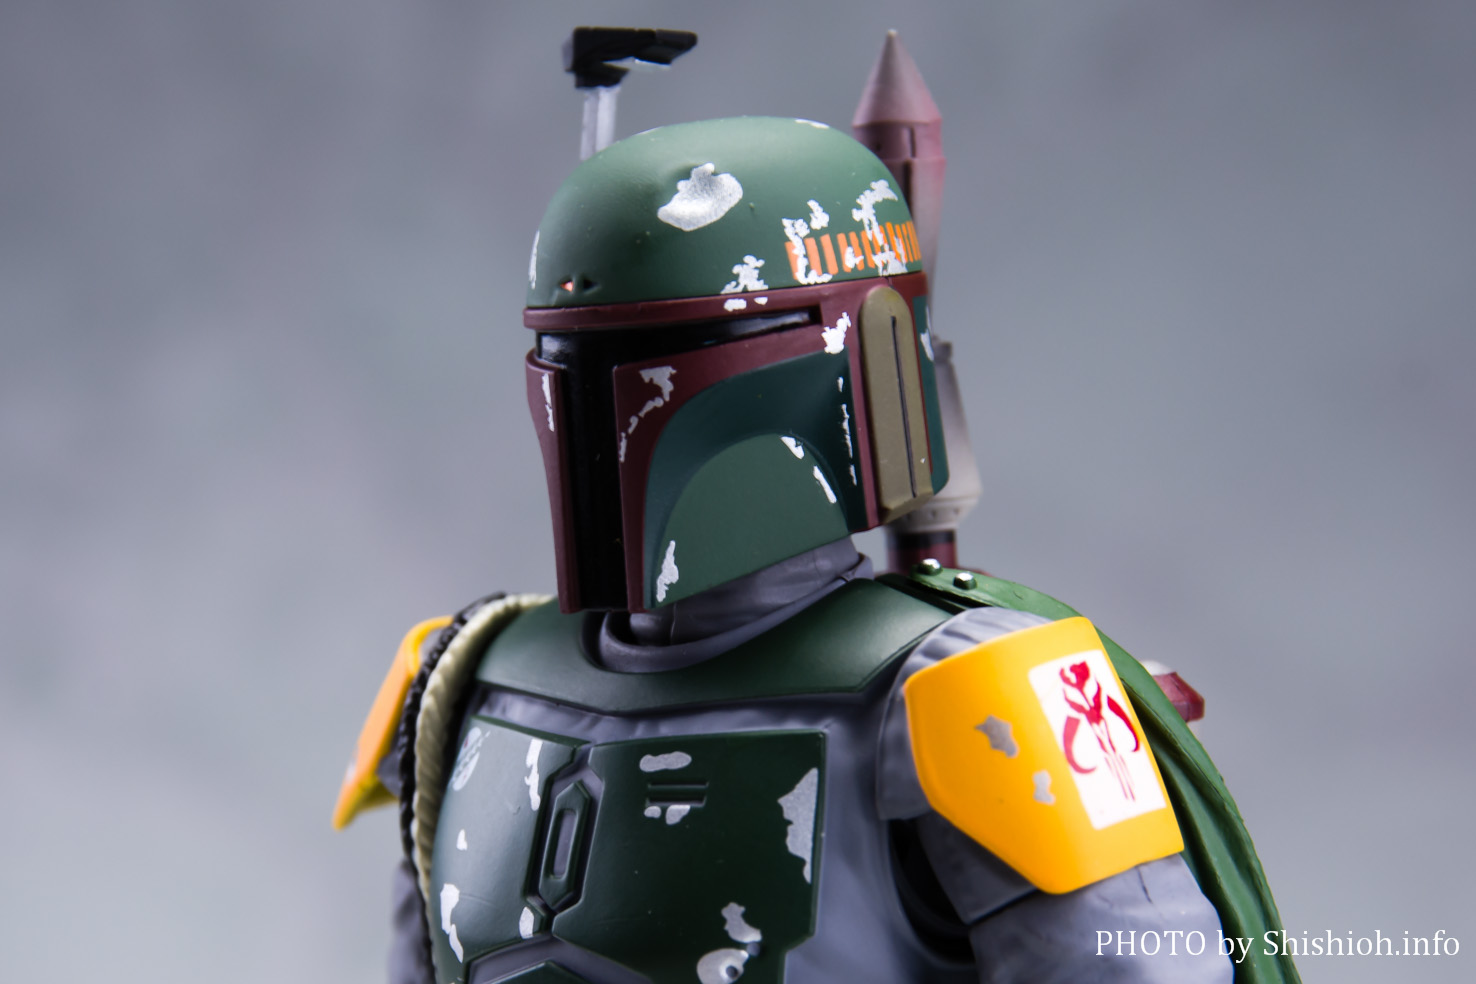 S.H.Figuarts ボバ・フェット(STAR WARS:Episode VI - Return of the Jedi)